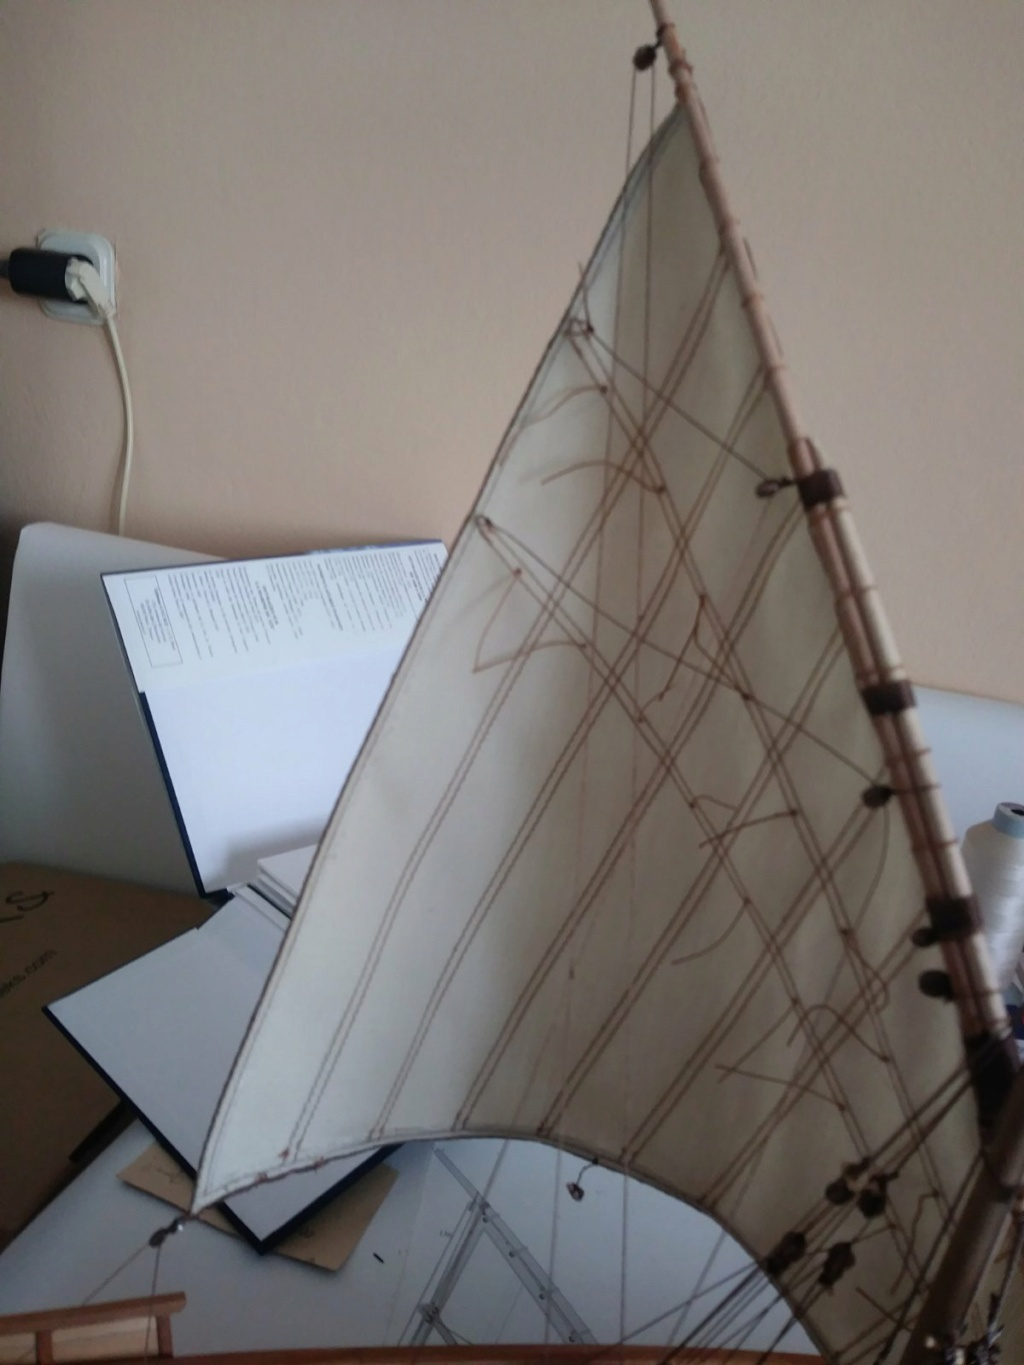 Felucca - Page 3 Img-1010